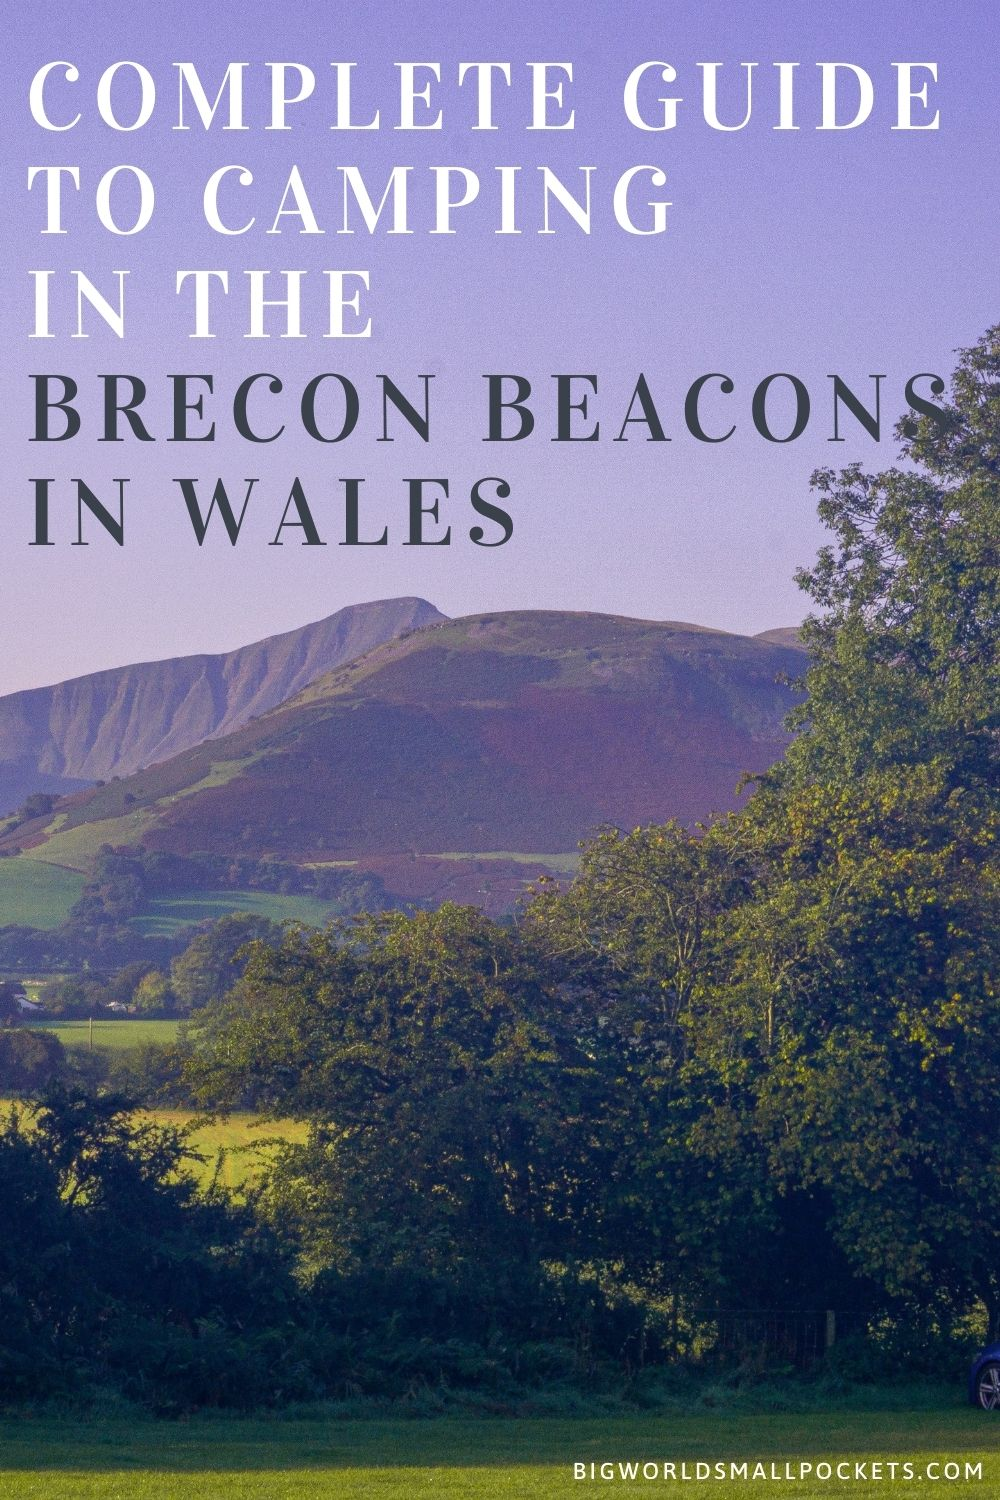 Complete Guide to Camping in the Brecon Beacons, Wales